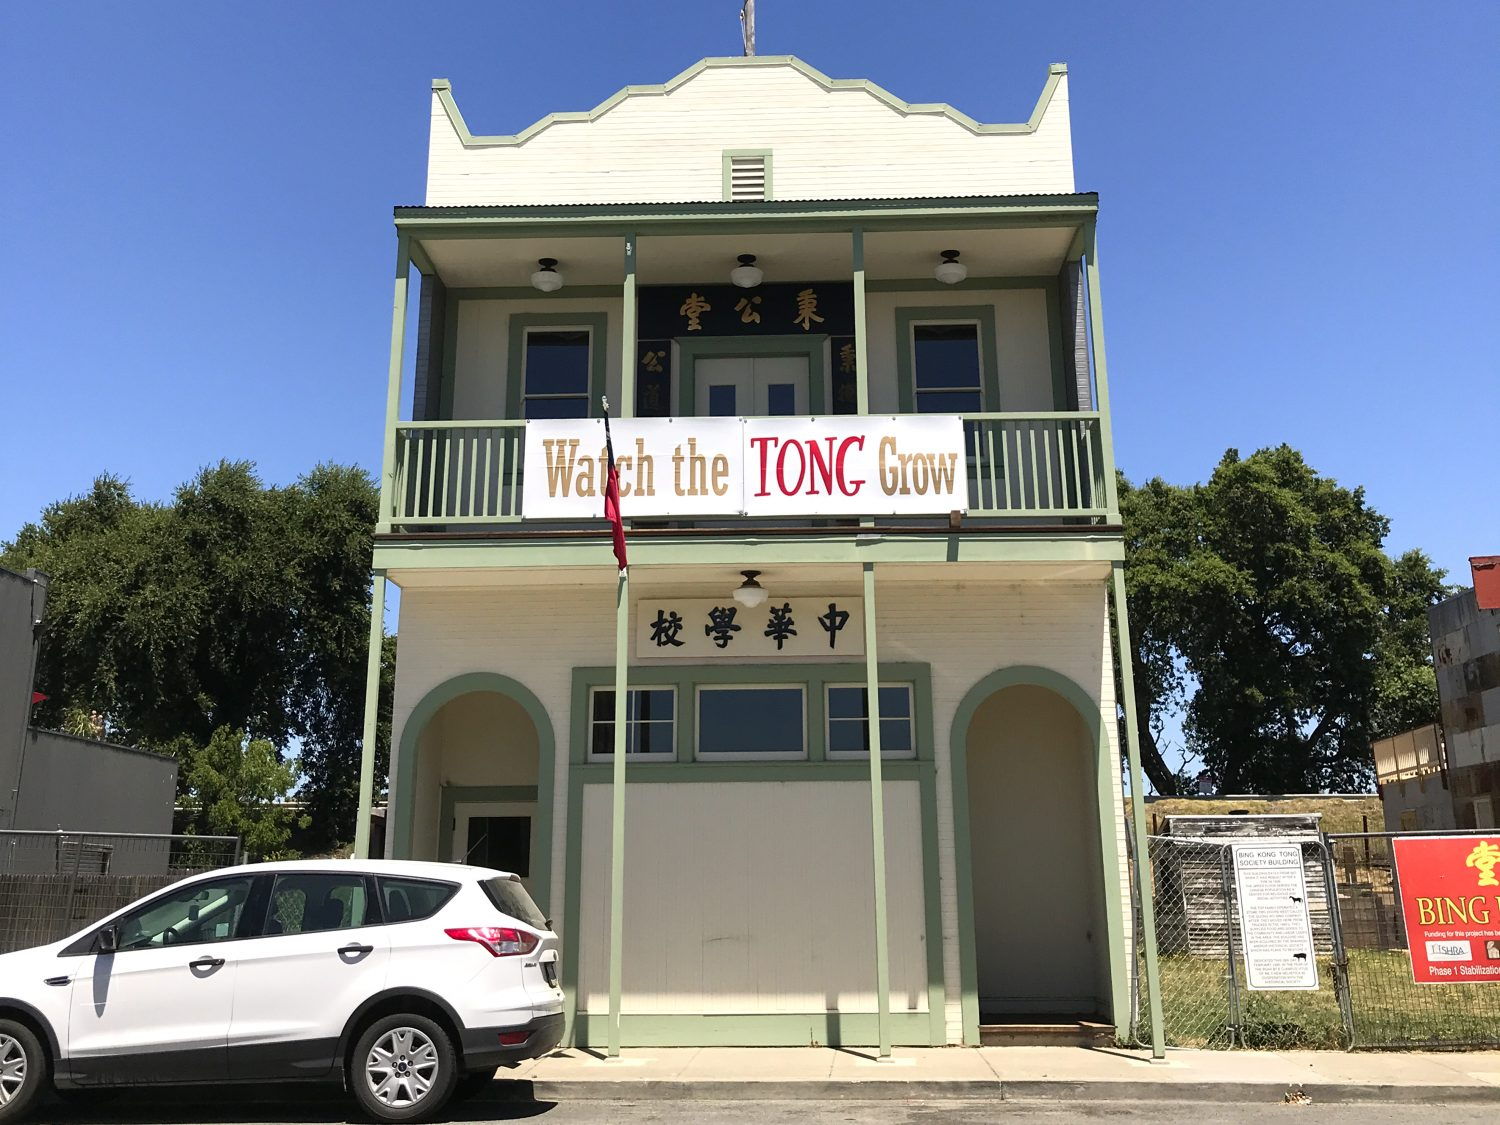 Iselton, CA, Watch the TONG Grow, Chinese building, restoration building, Chinese historical